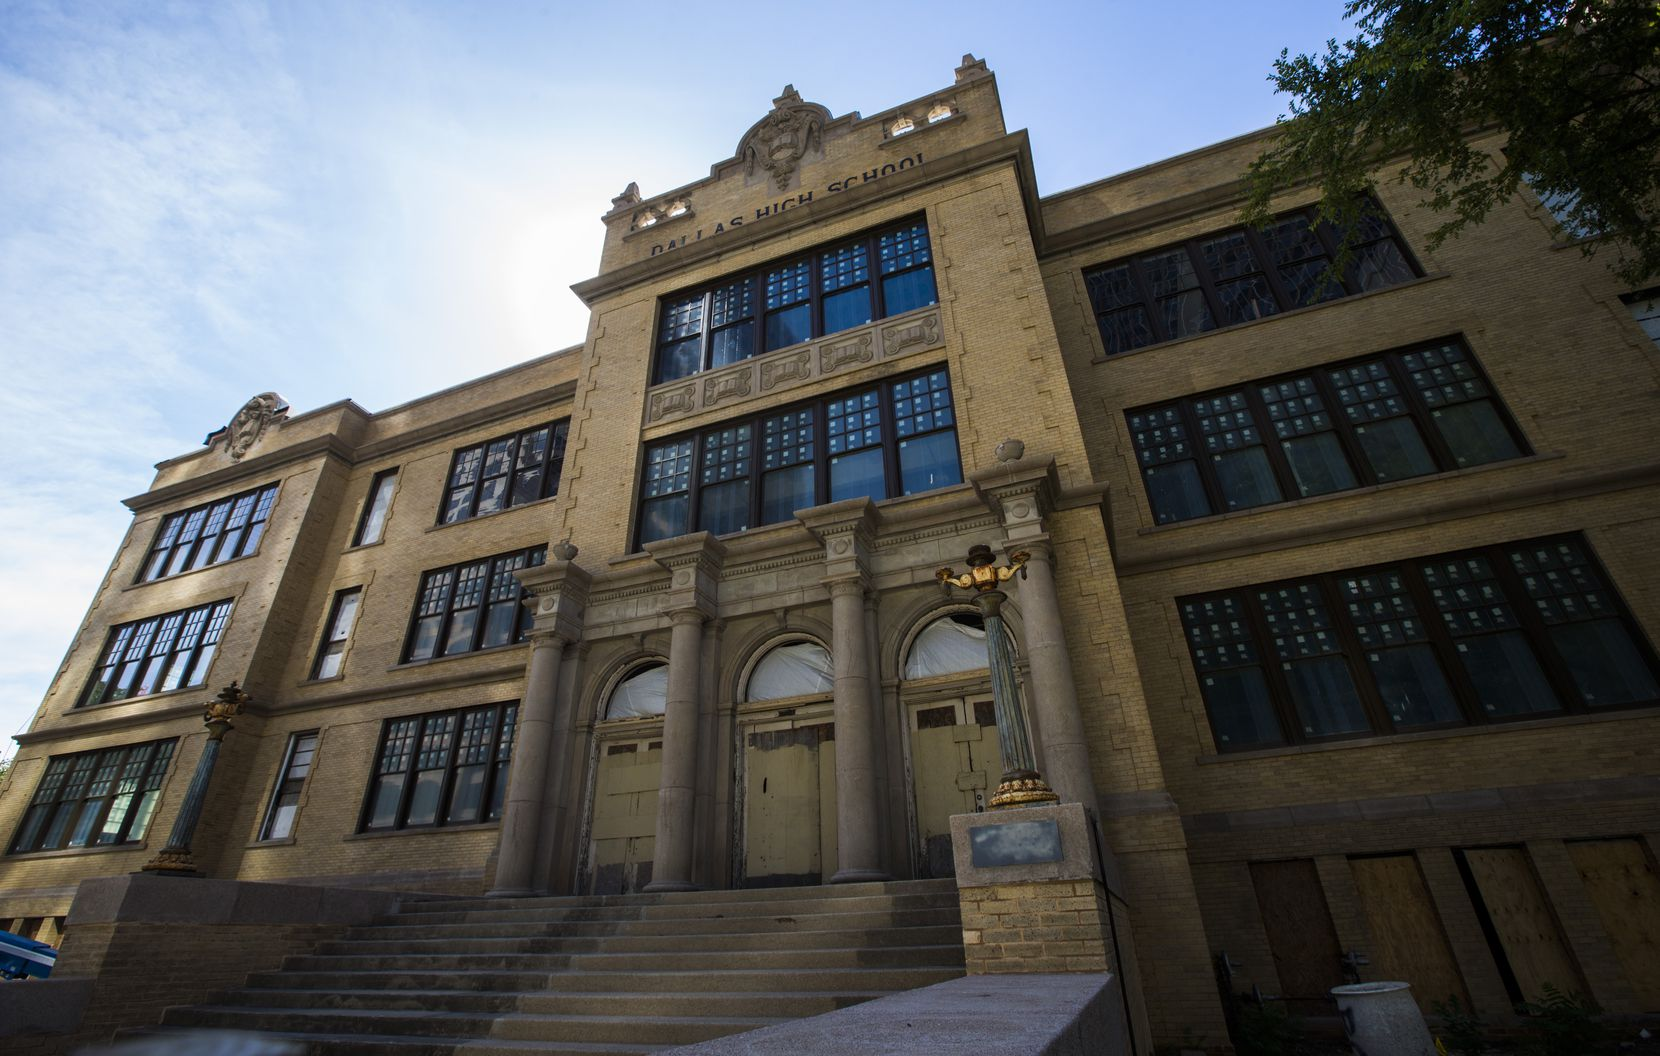 Developer Matthews Southwest is spending $50 million to convert the old Dallas High School building, built in 1907, into retail and office space. The developer has said one of its tenants needs to move into the renovated space in October.